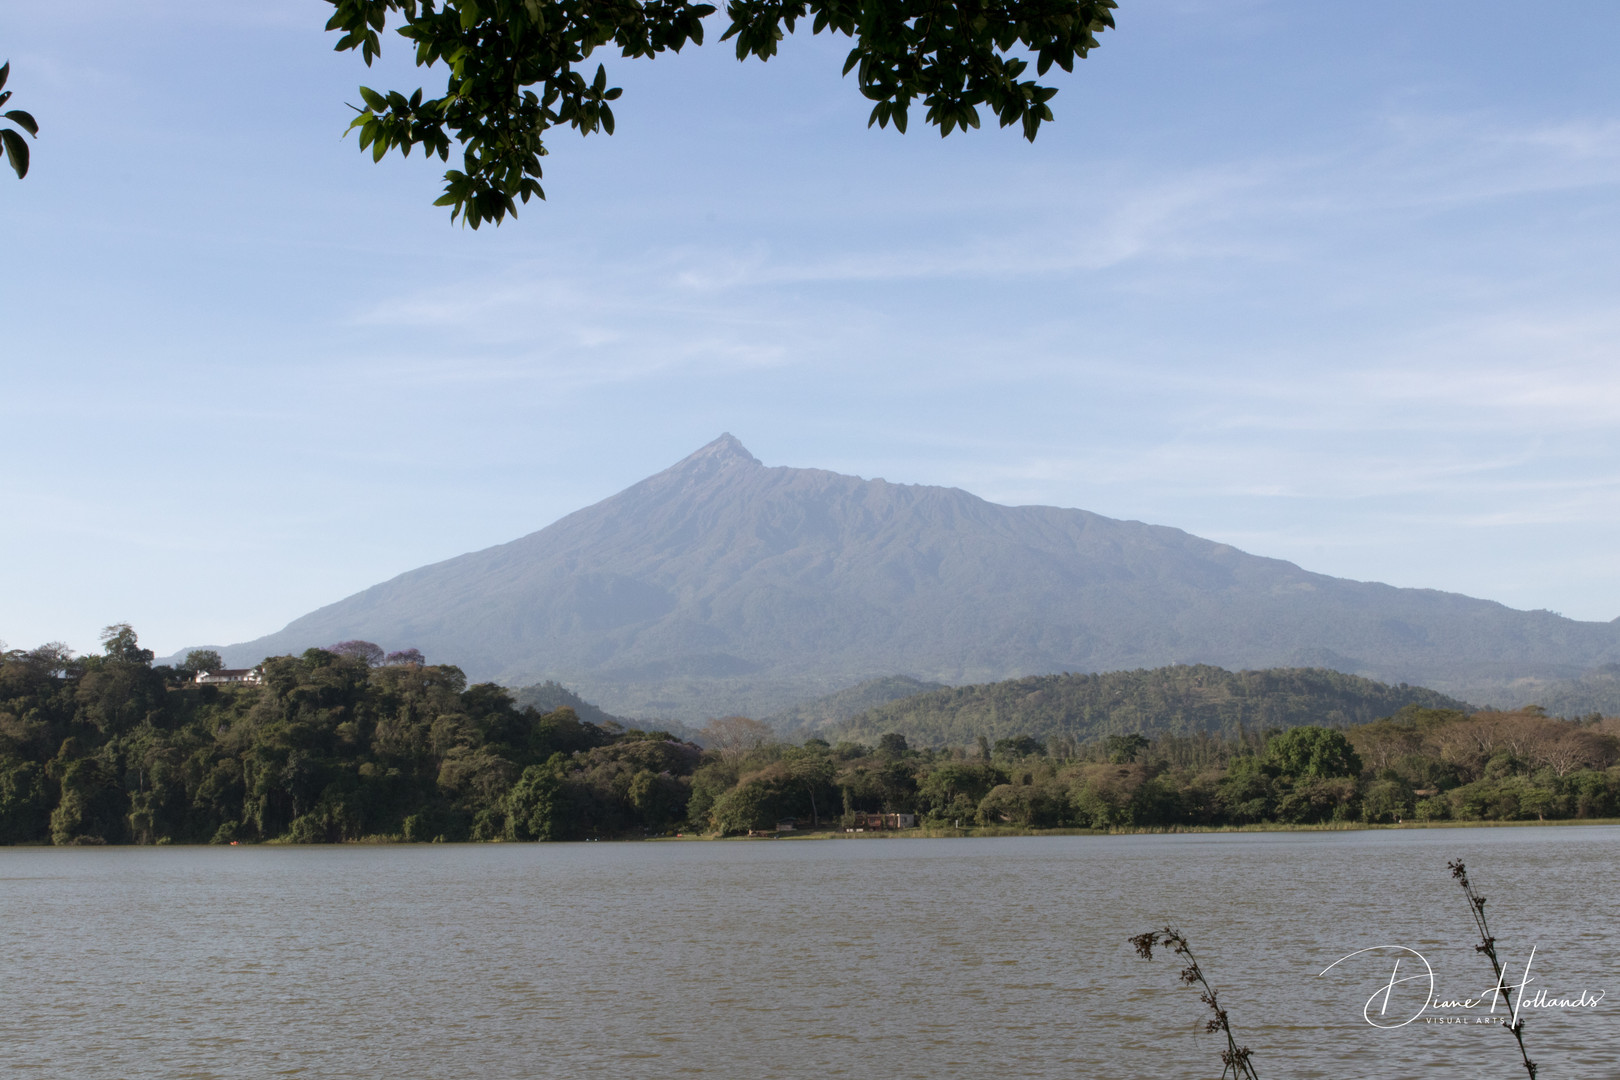 Lake Duluti and Mount Meru